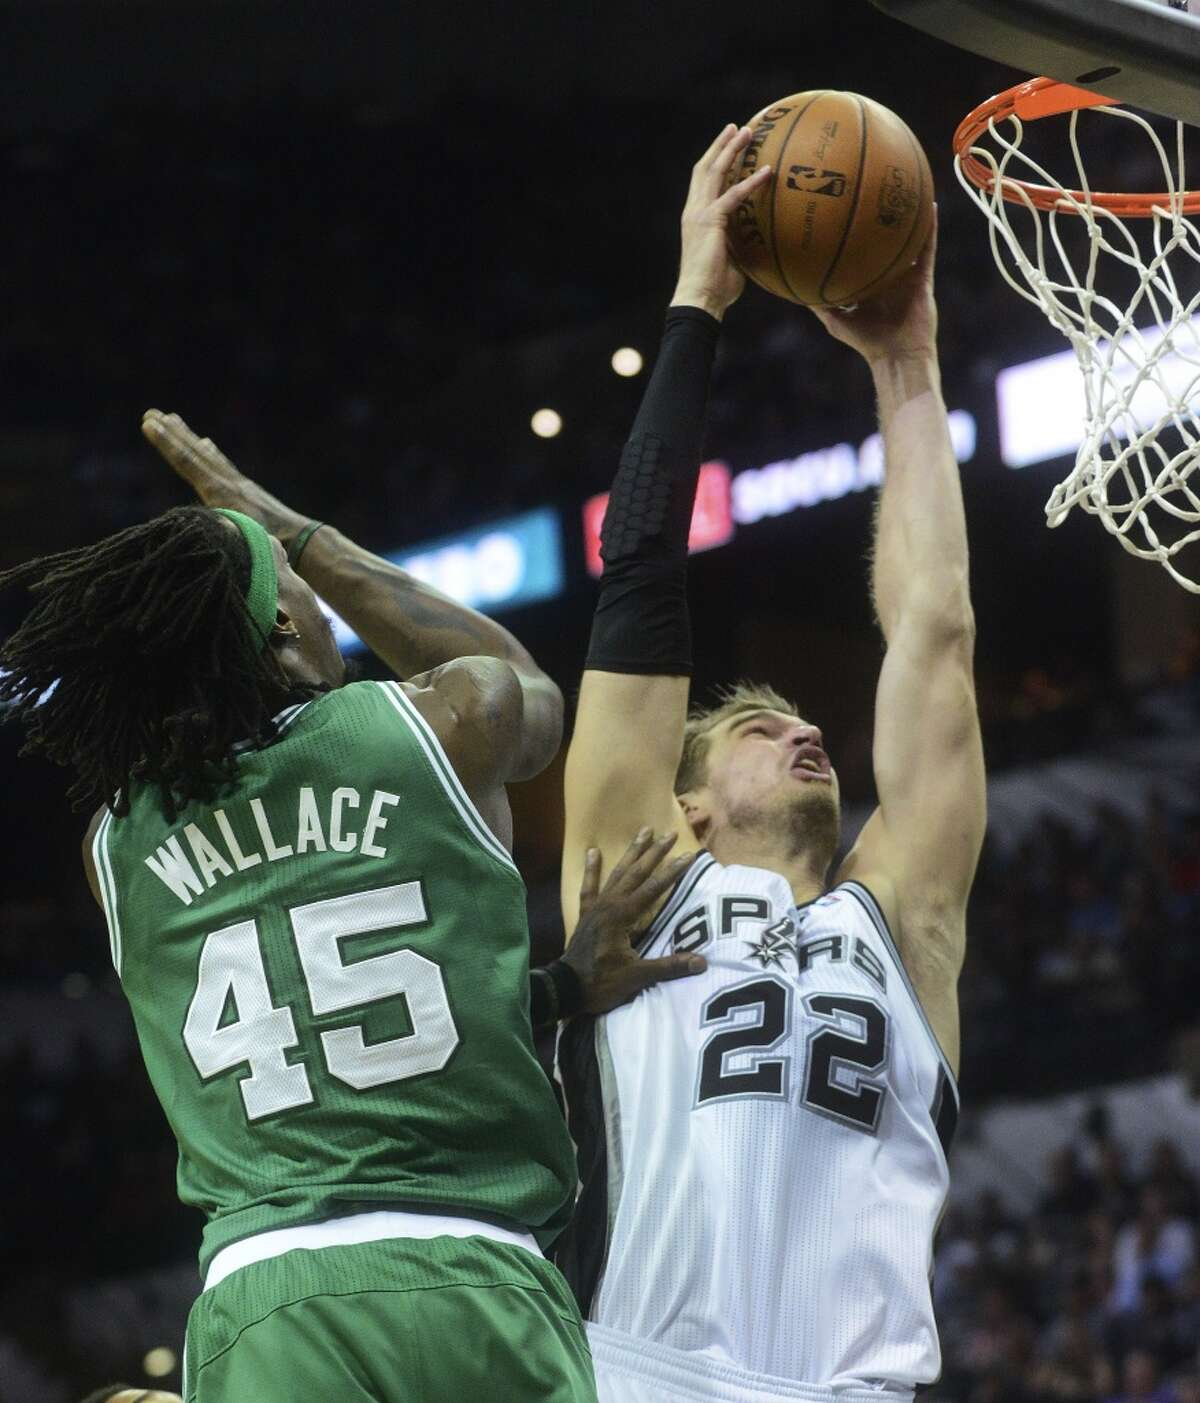 Tiago Splitter of the San Antonio Spurs dunks the ball against Gerald Wallace of the Boston Celtics during second-half NBA action at the AT&T Center on Wednesday, November 20, 2013. The Spurs won, 104-93.